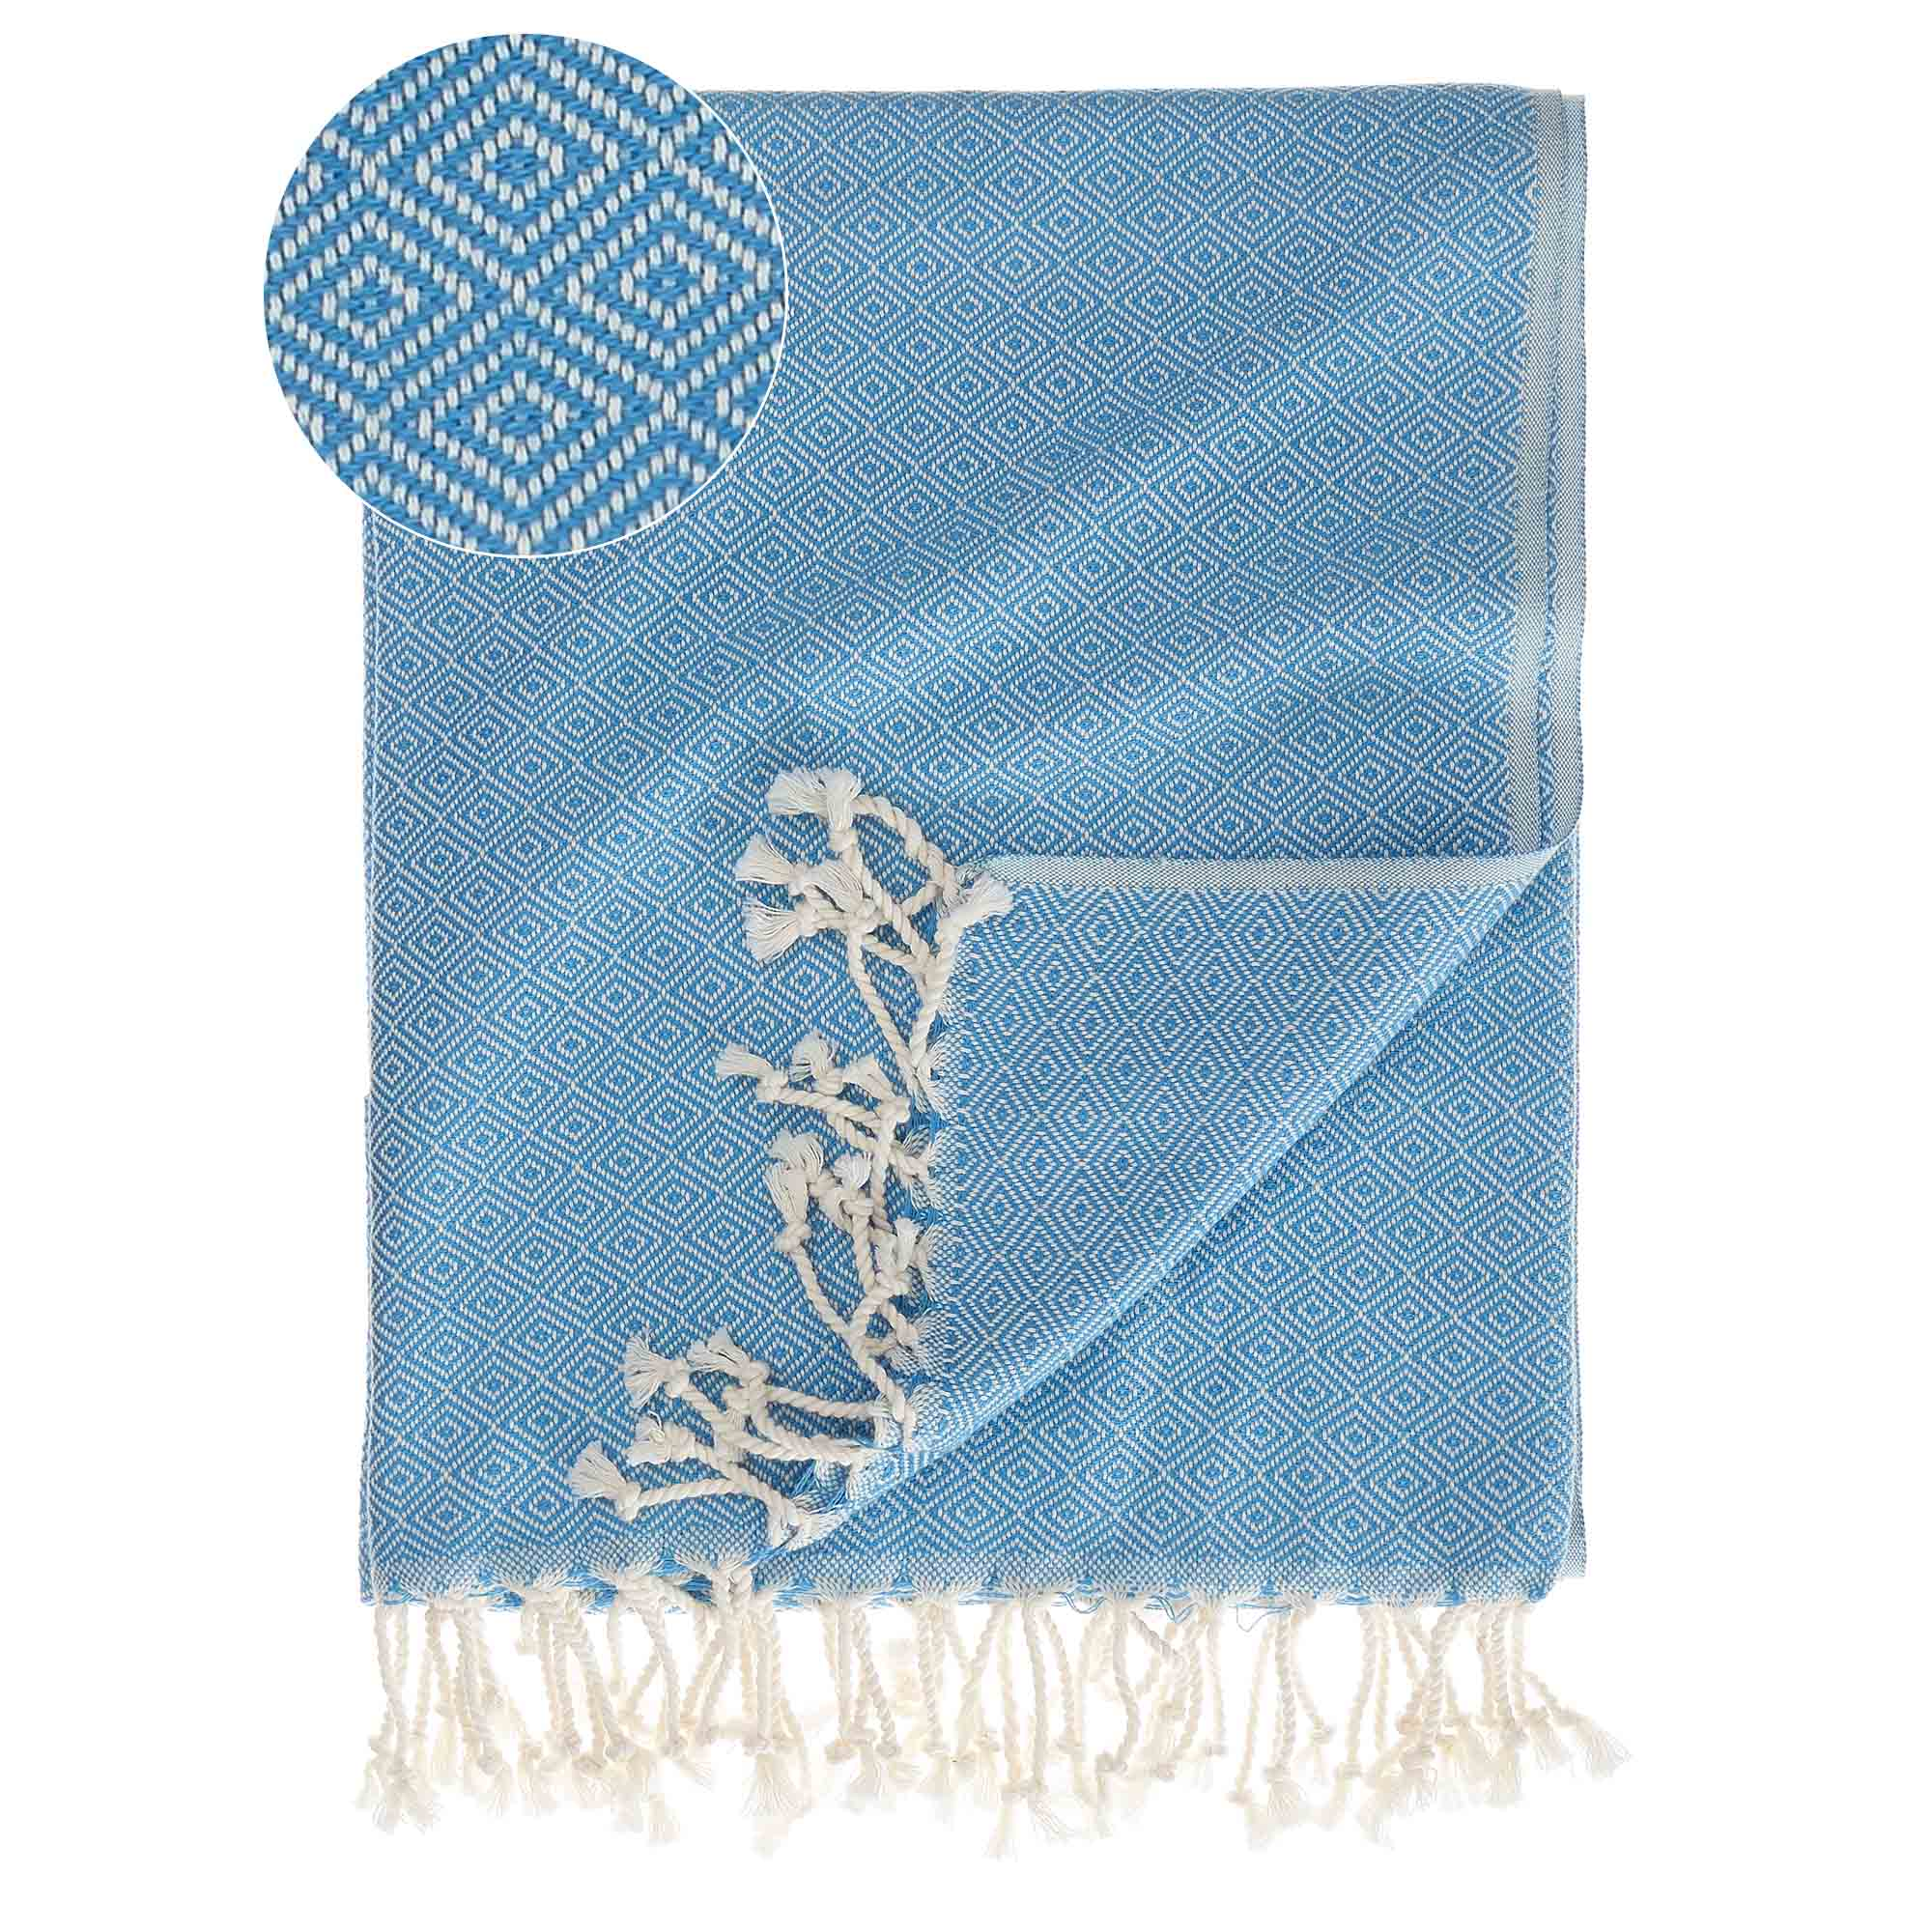 Cesme Hammam Towel light blue & white, 100% cotton